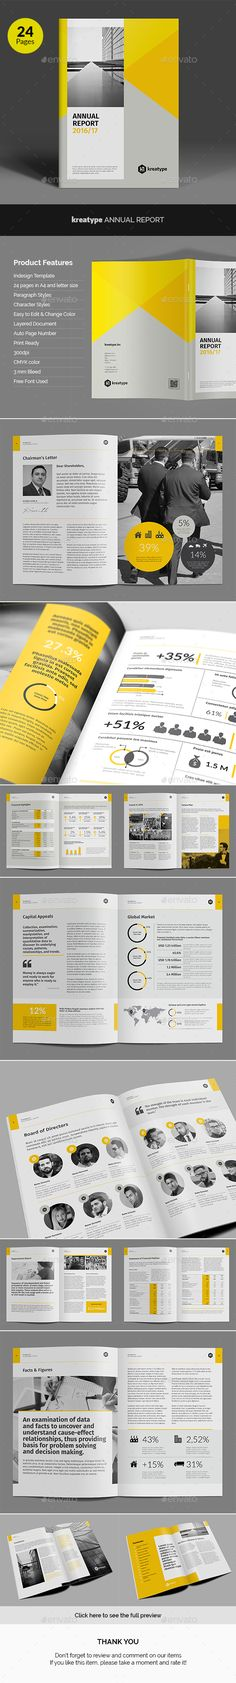 Kreatype Annual Report Template InDesign INDD. Download here: http://graphicriver.net/item/kreatype-annual-report/16511713?ref=ksioks